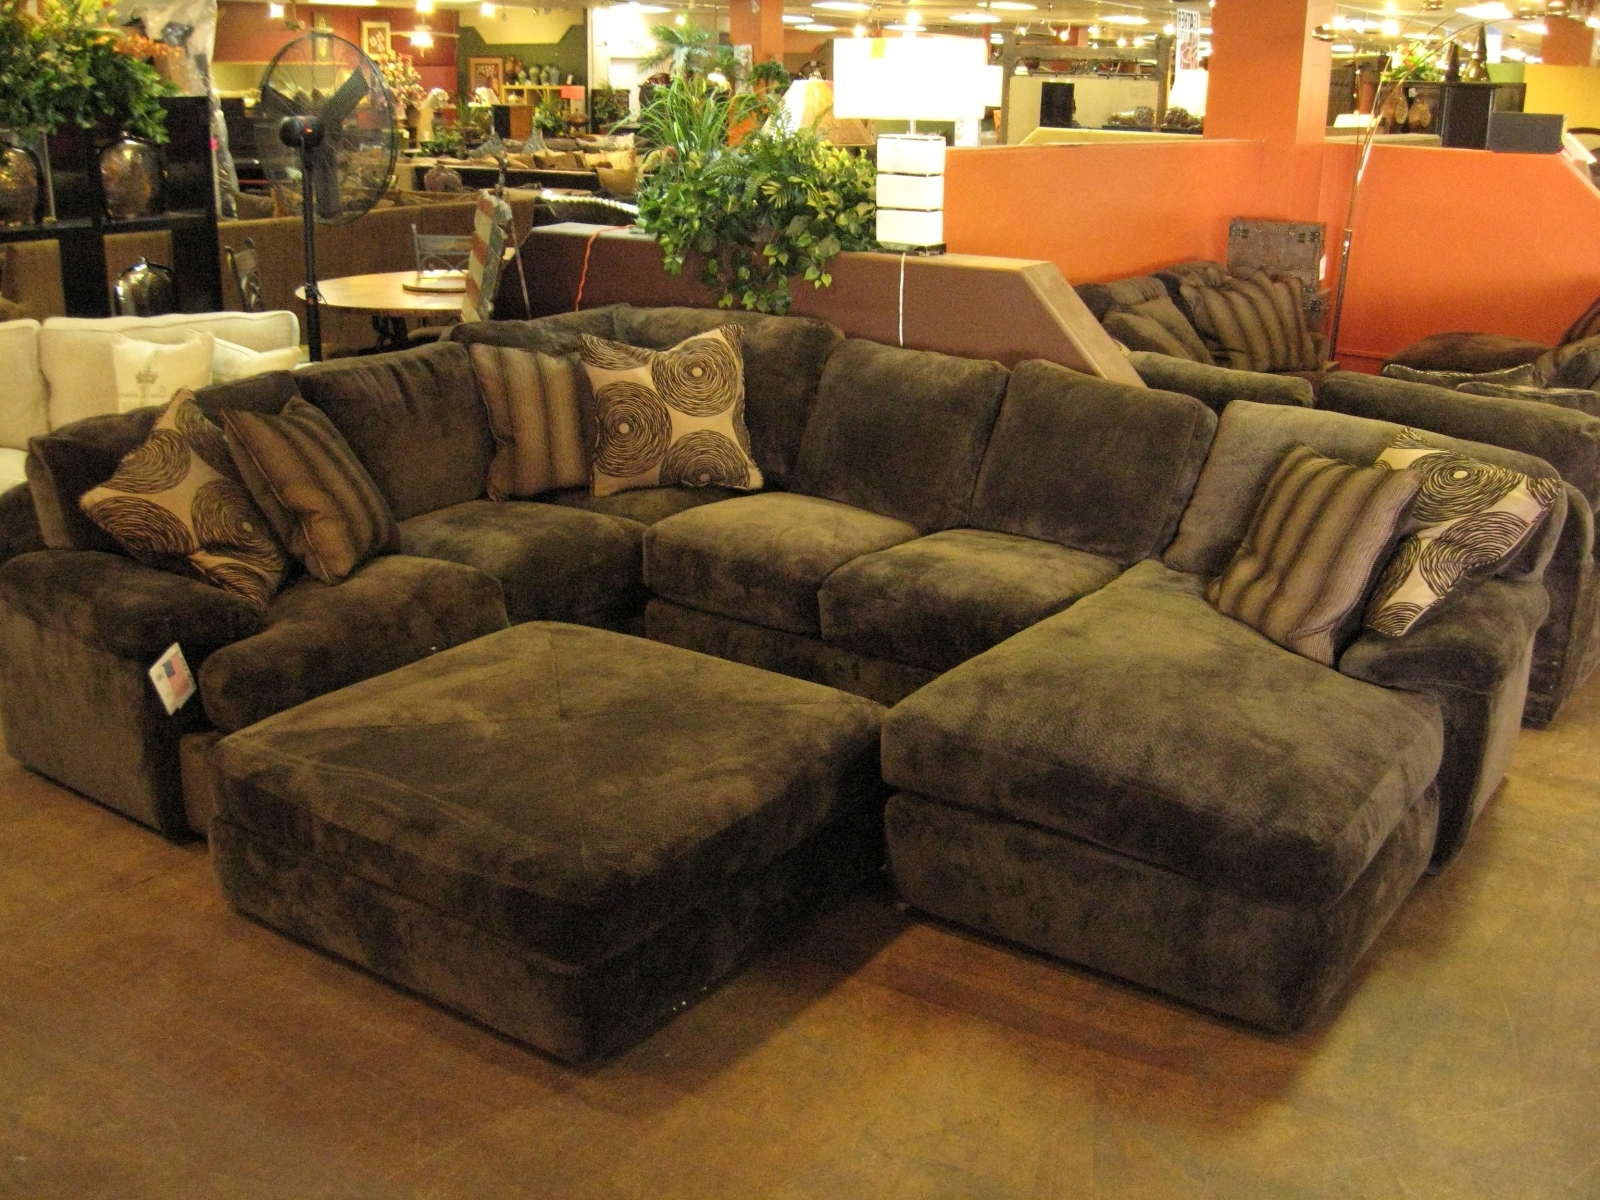 Most Up To Date Black Velvet Fabric Sectional Sleeper Sofa With Chaise Lounge And Throughout Sectional Sofas With Chaise Lounge And Ottoman (View 15 of 20)